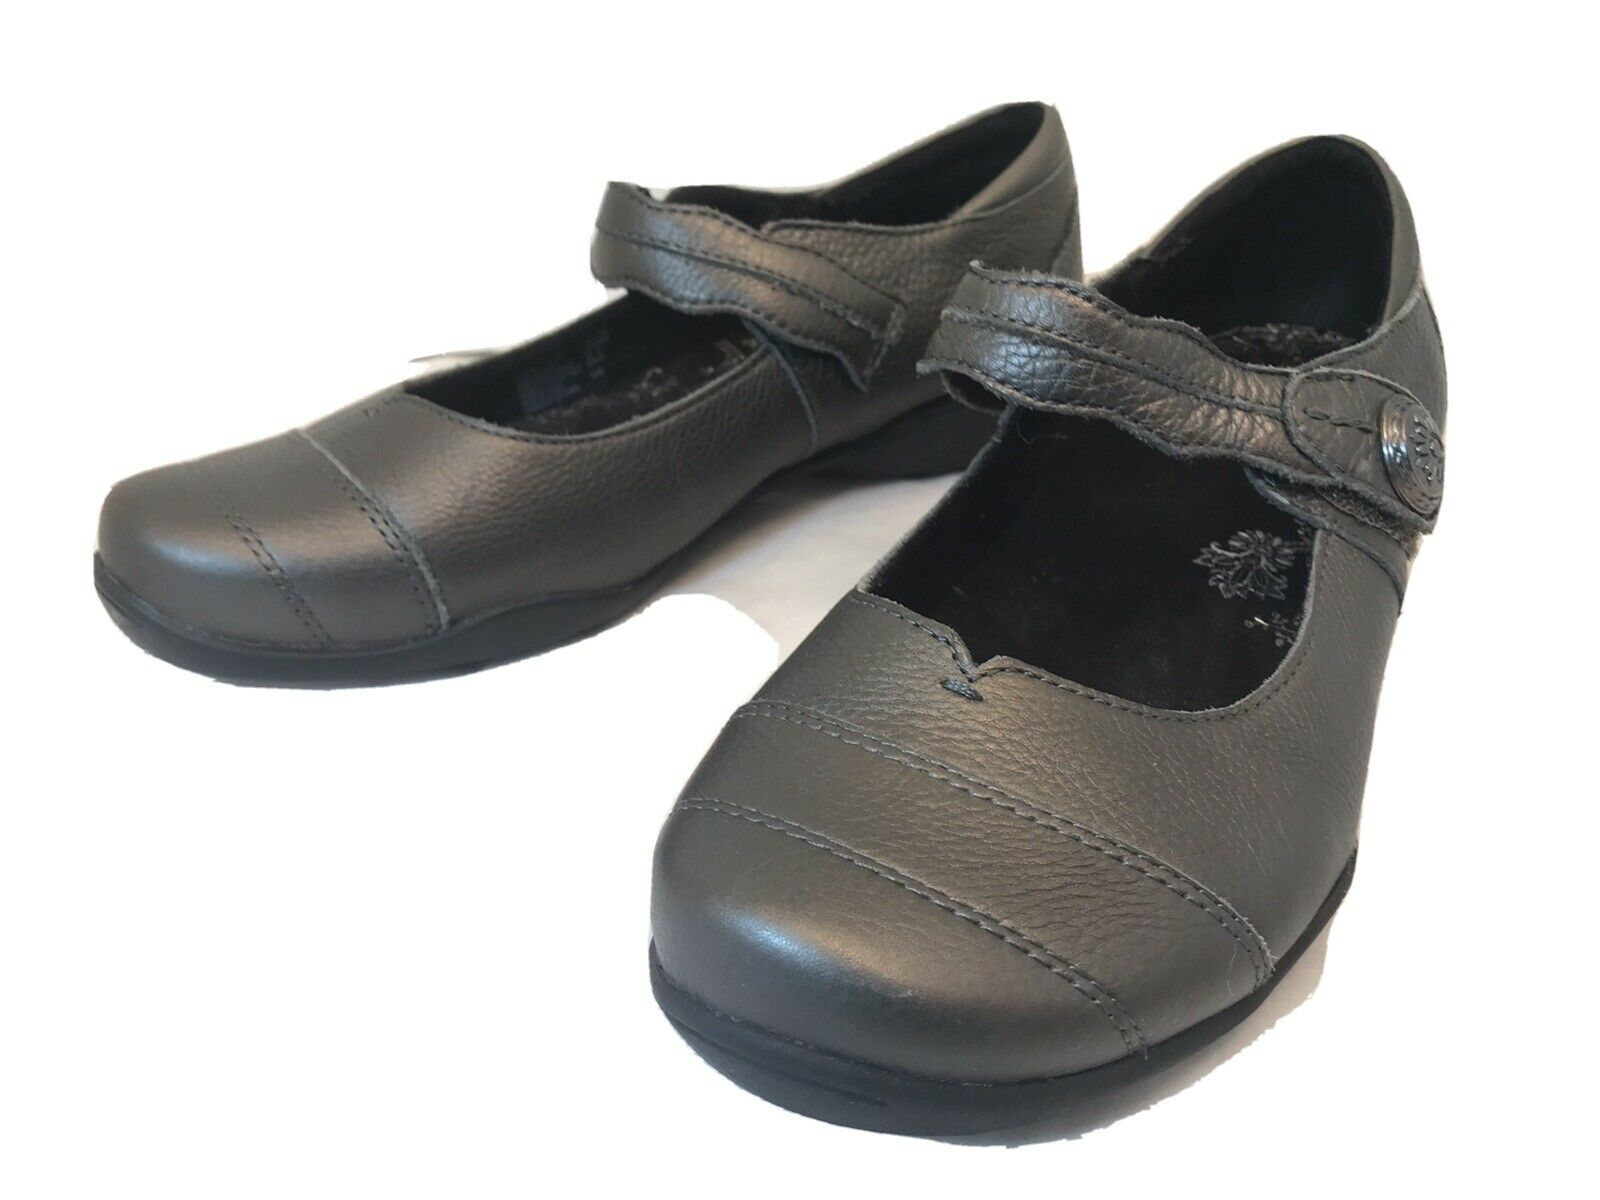 Taos Applause Women's Mary Jane Comfort Shoes Size 9 Gray Leather